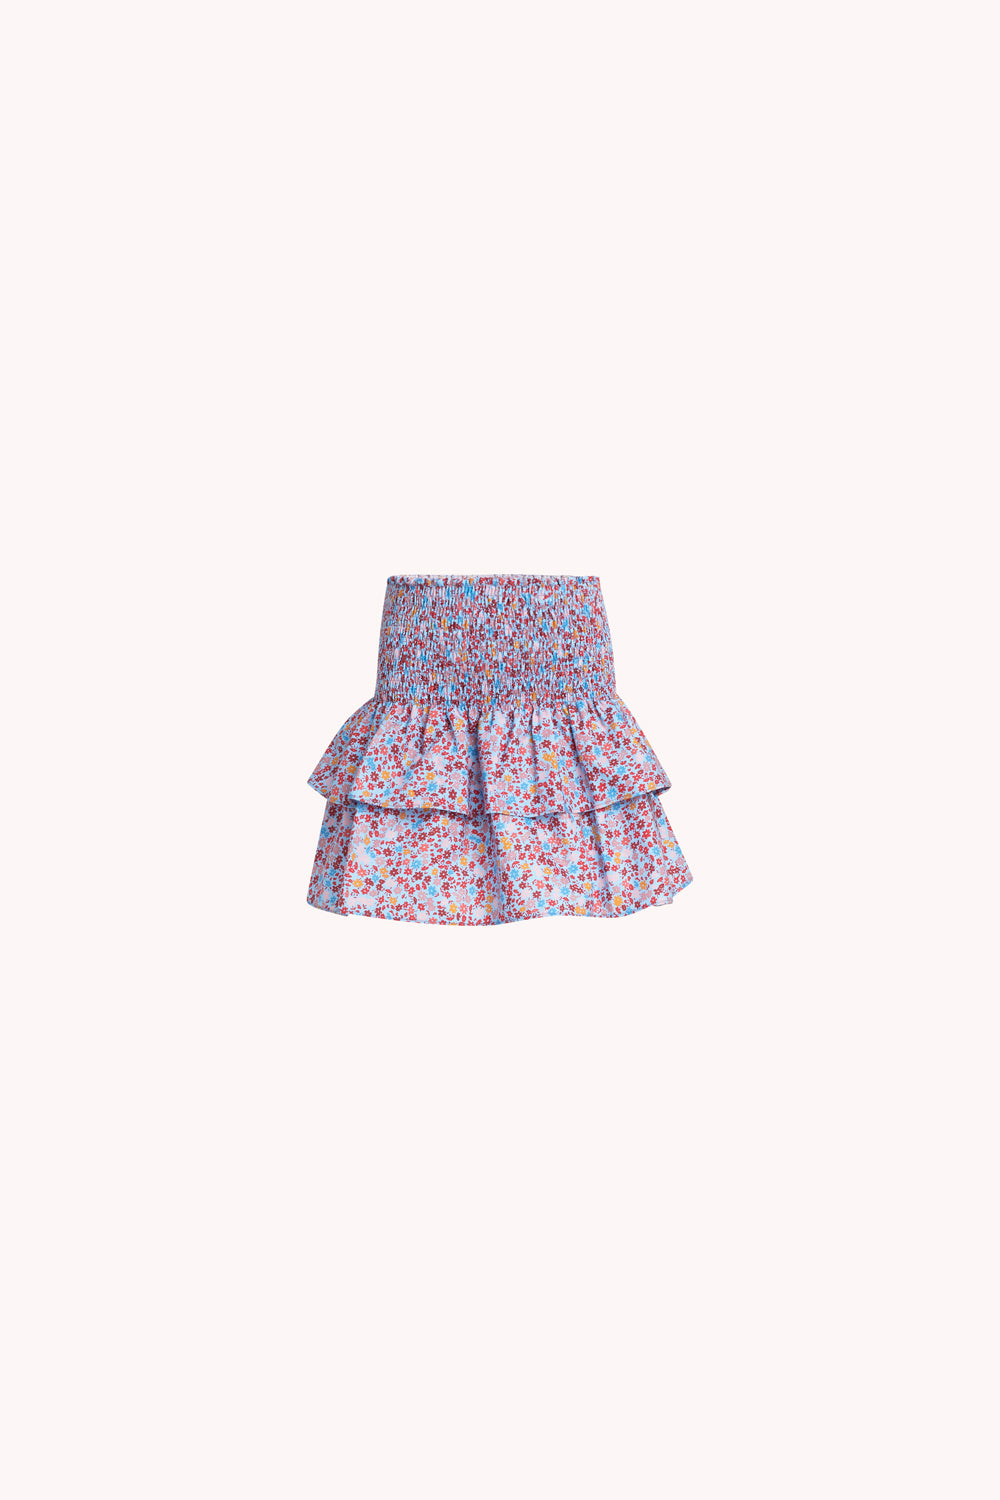 Amari Skirt | Baby Blue Ditsy Floral